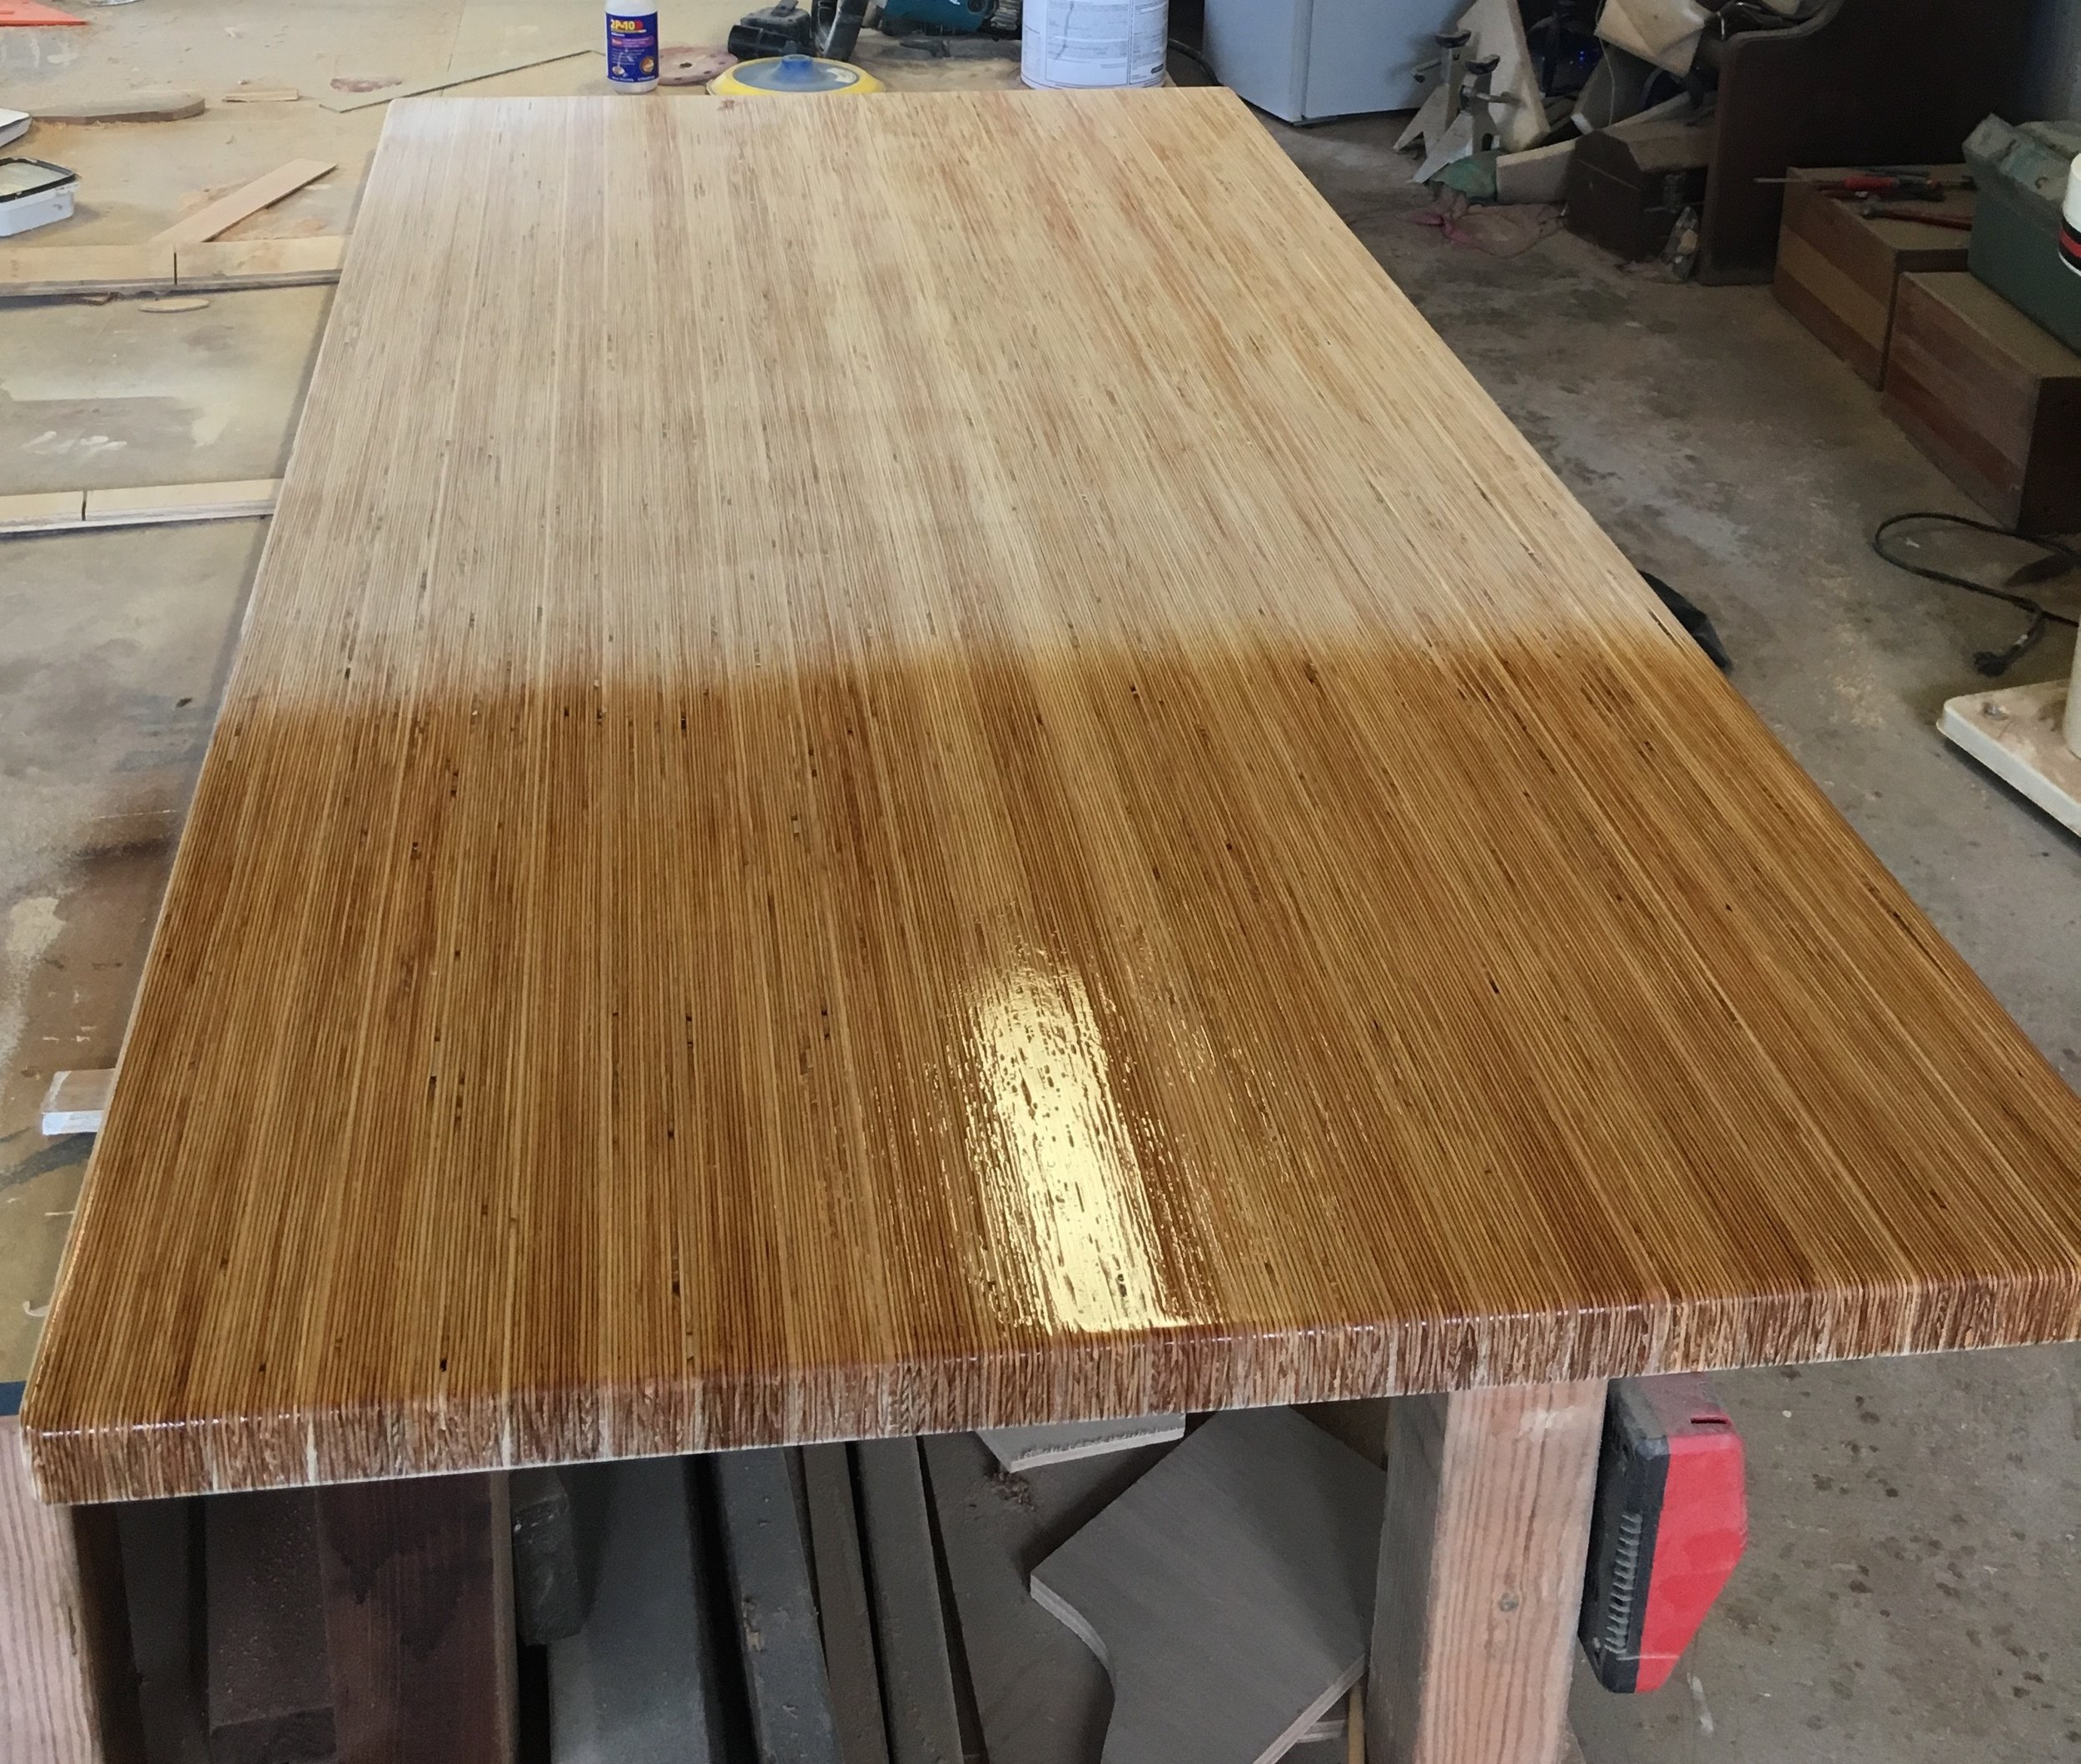 first coat of lacquer on plywood